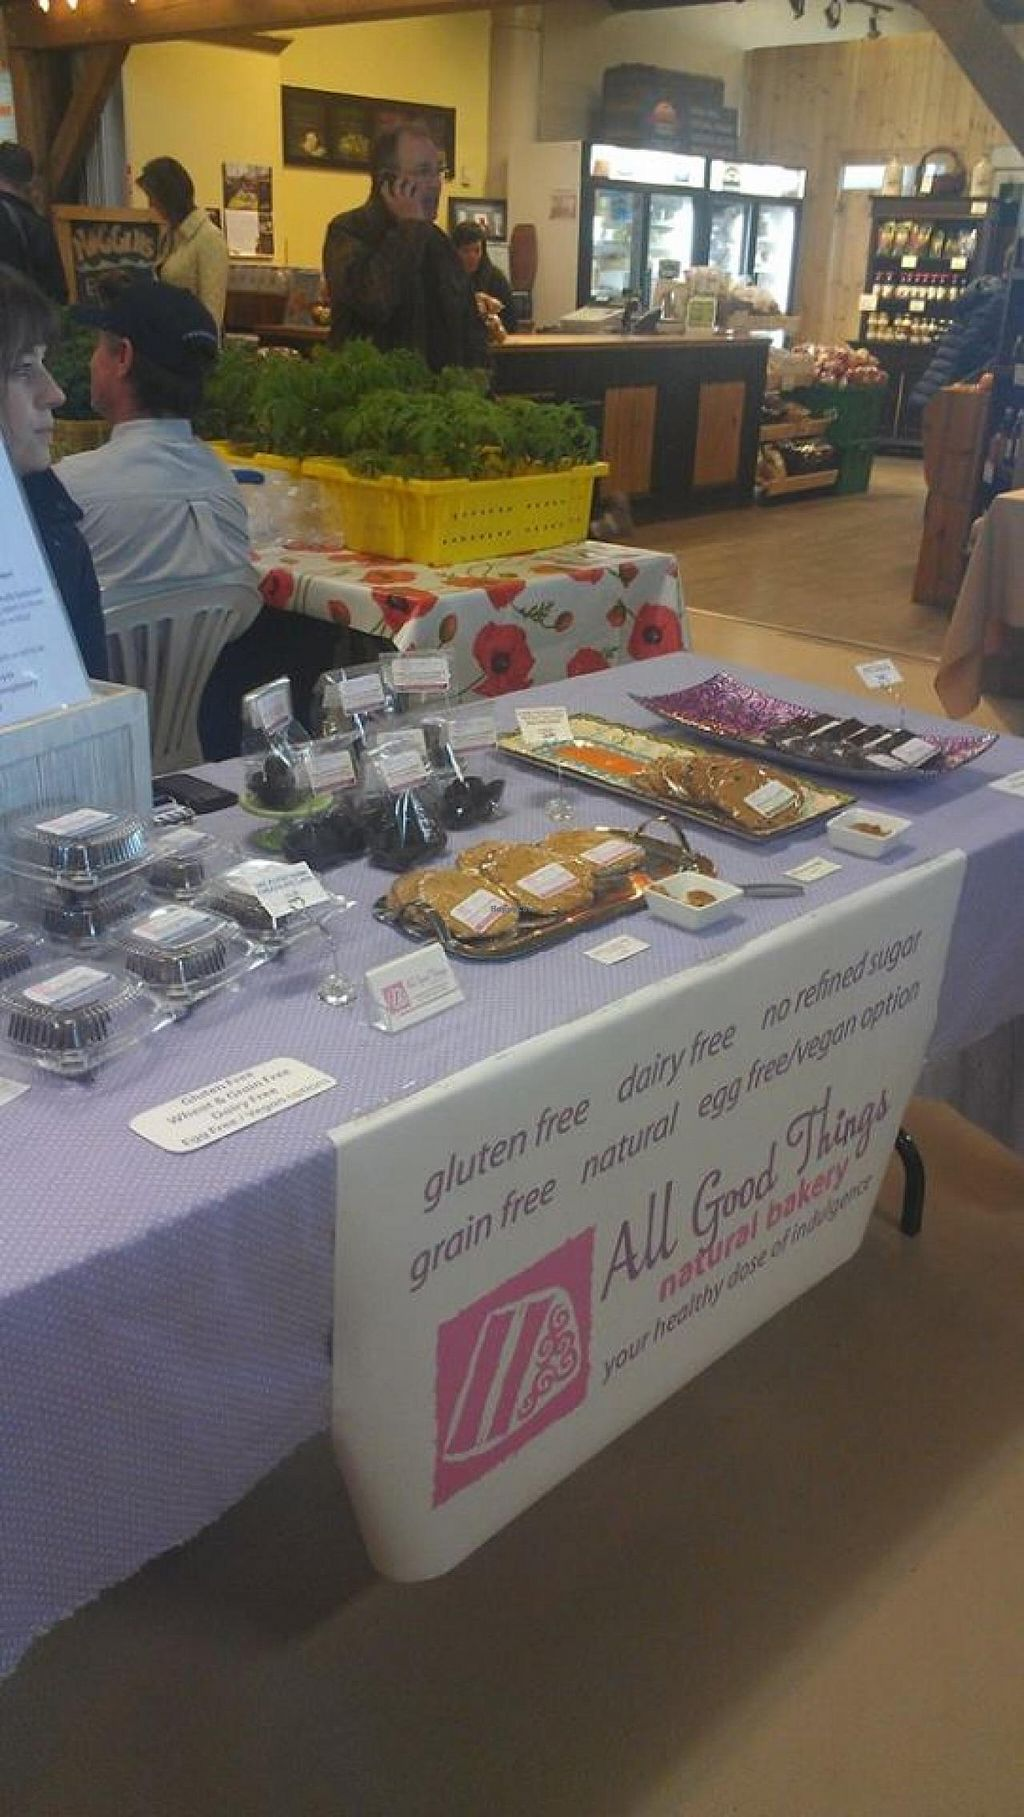 "Photo of Alderney Landing Farmer's Market  by <a href=""/members/profile/QuothTheRaven"">QuothTheRaven</a> <br/>All Good Things offers vegan cookies.  <br/> April 26, 2014  - <a href='/contact/abuse/image/40337/68652'>Report</a>"